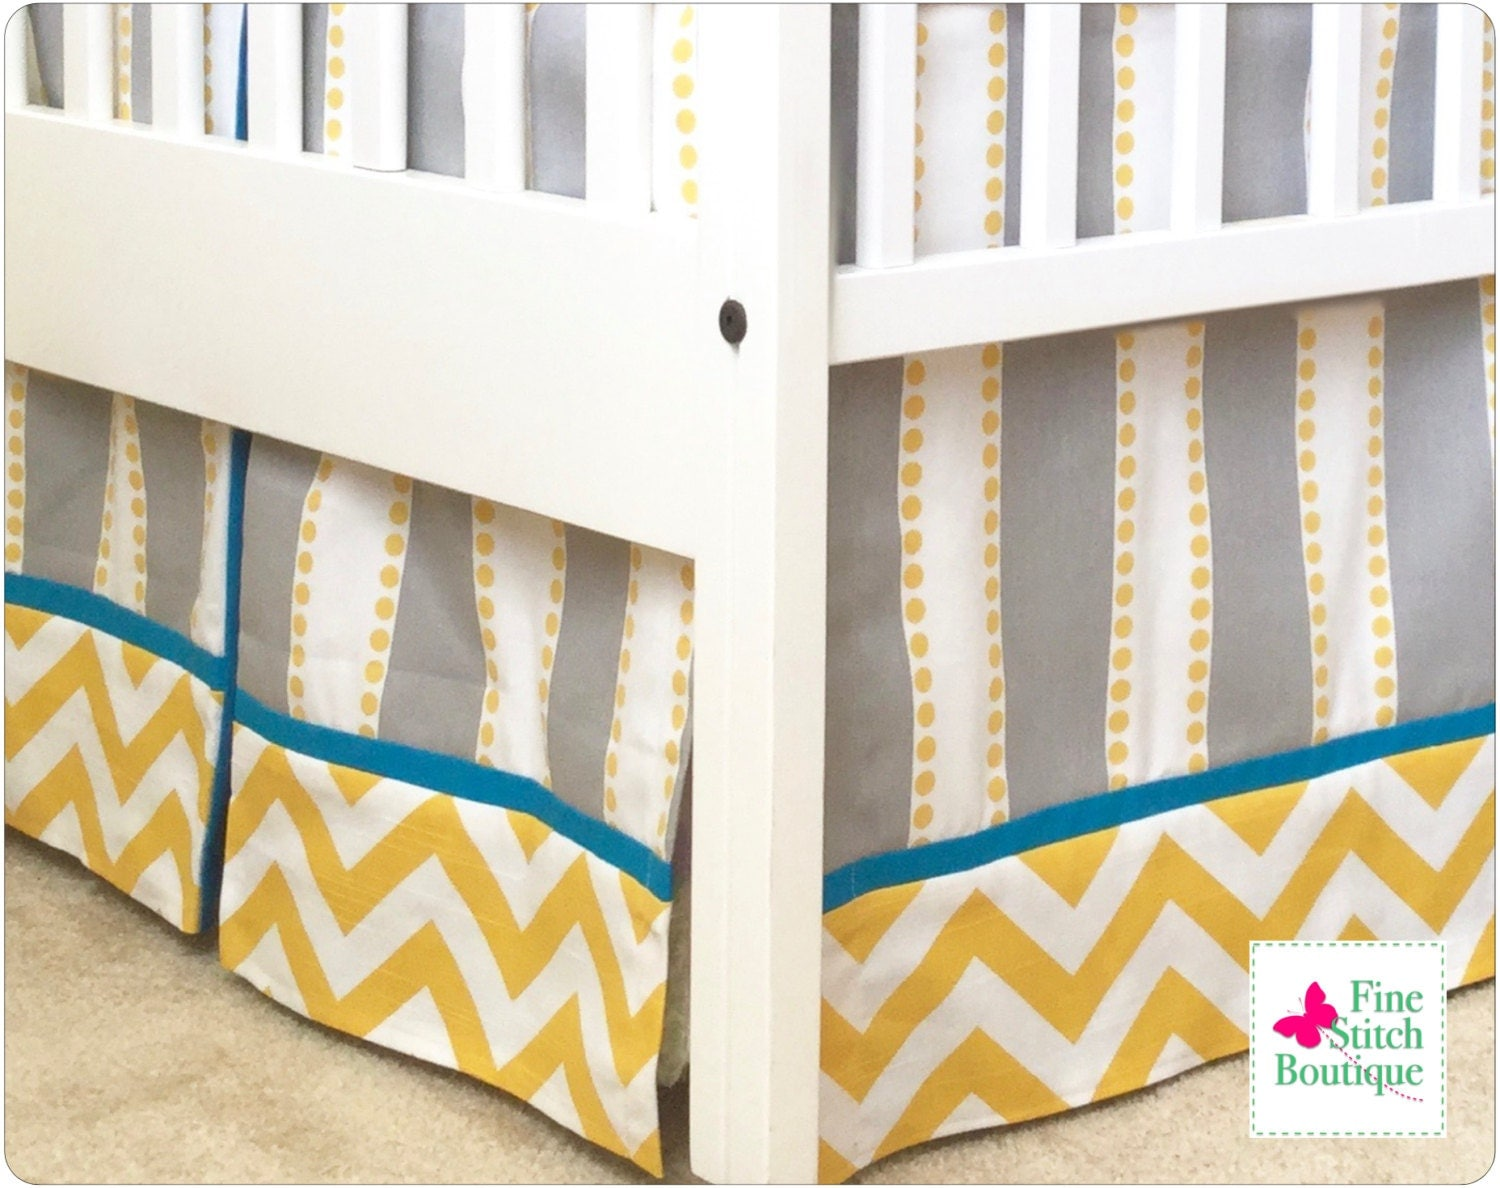 Baby bed in nigeria - 17 Saffron Lulu Stripe Baby Boy Pleated Crib Skirt Yellow And Gray Crib Skirt Chevron Crib Skirt Stripe Crib Skirt